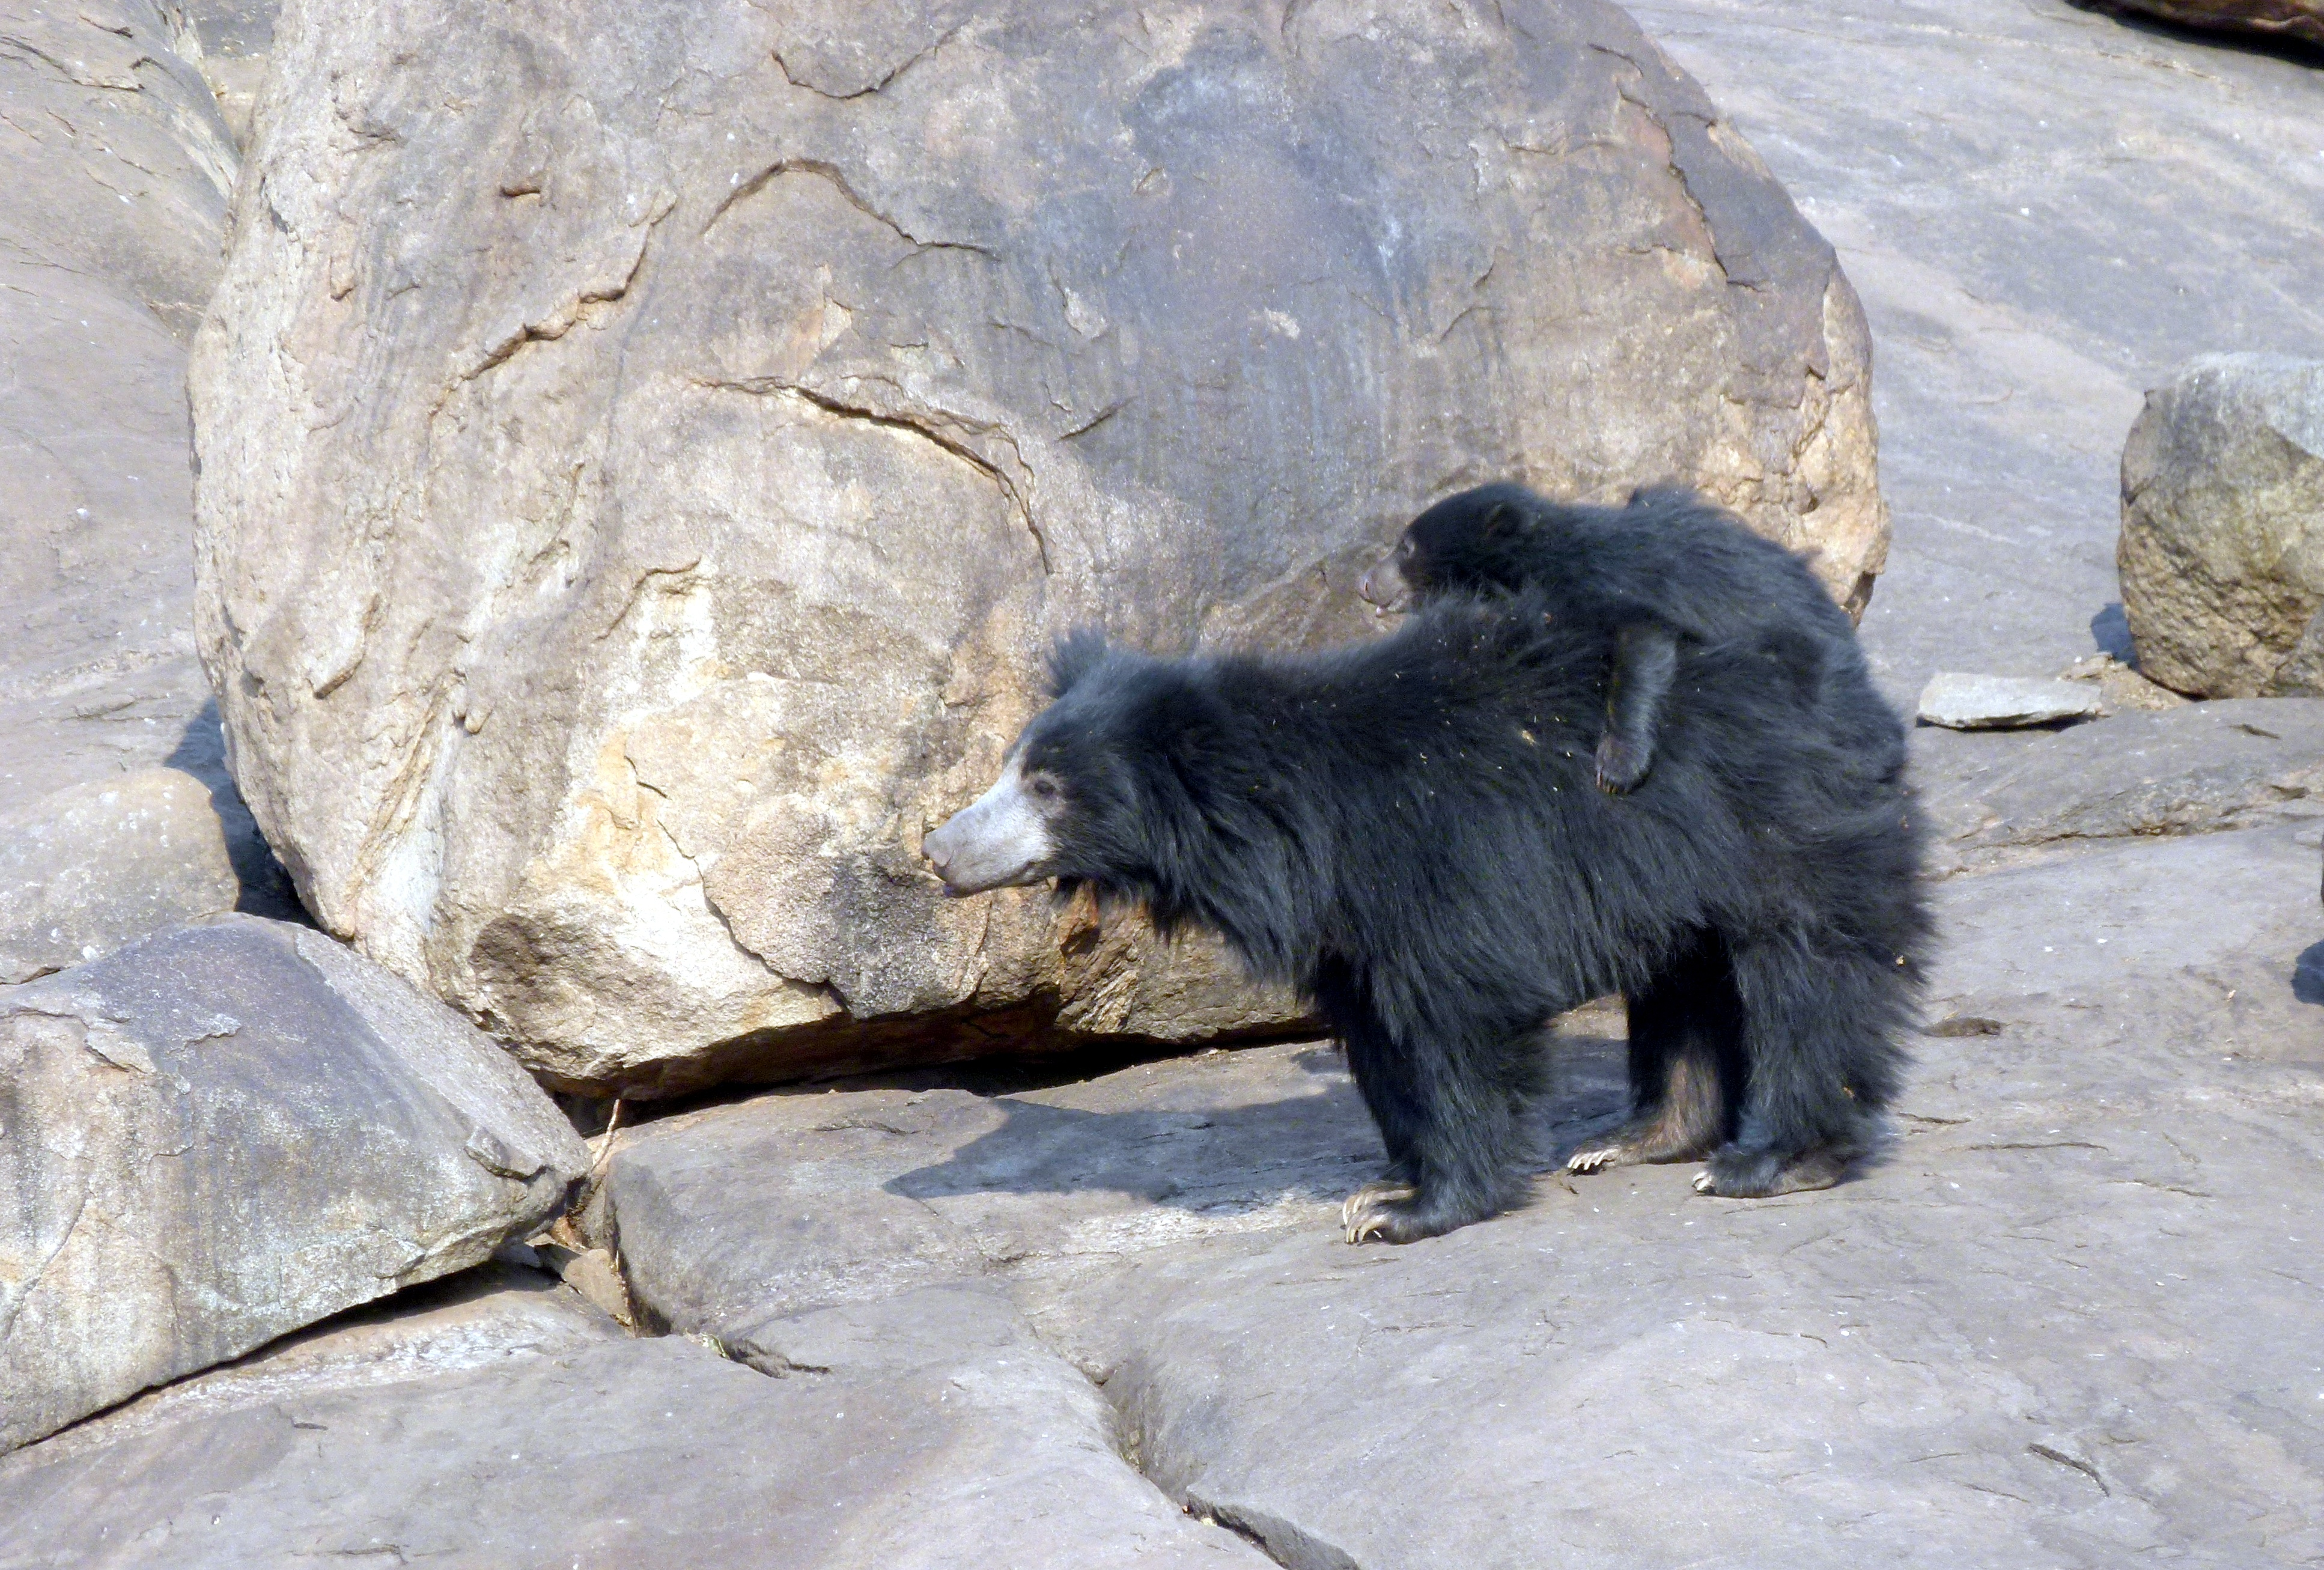 Sloth bear with its cub